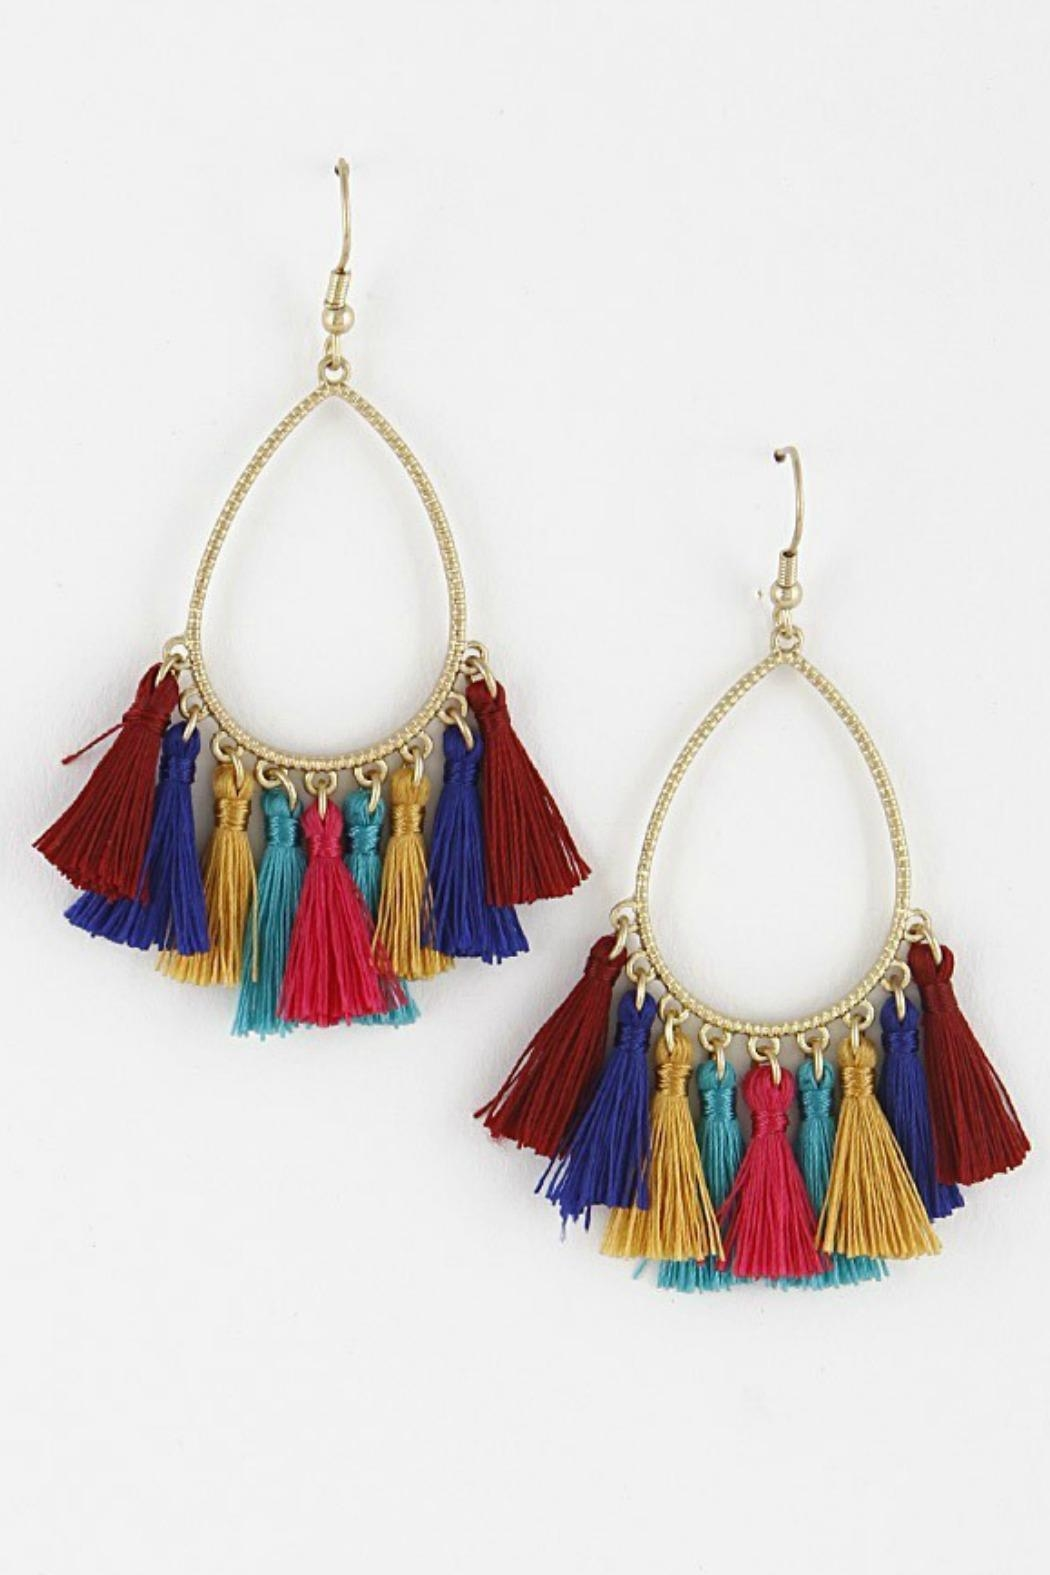 a81206957b767 Bag Boutique Multi-Colored Tassel Earrings from Kentucky by Izzie's ...